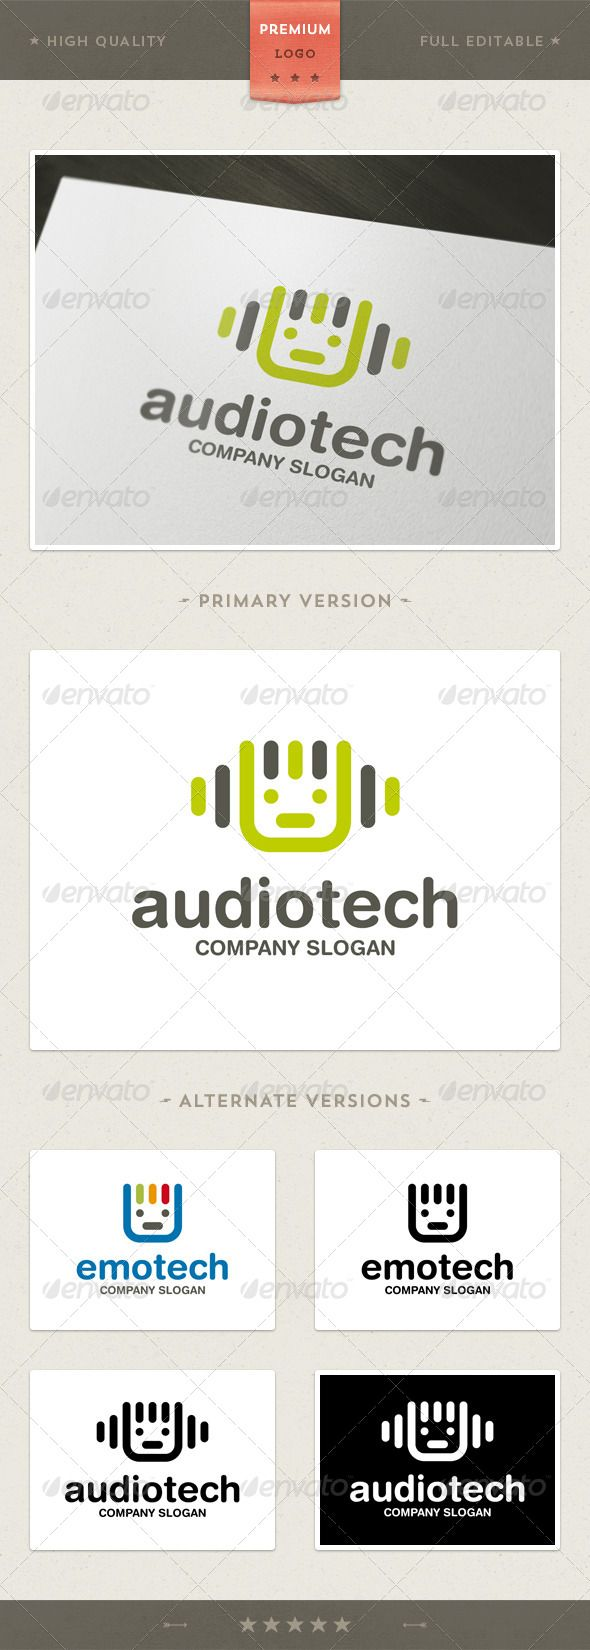 Audiotech a logo that can be used for dj, software and